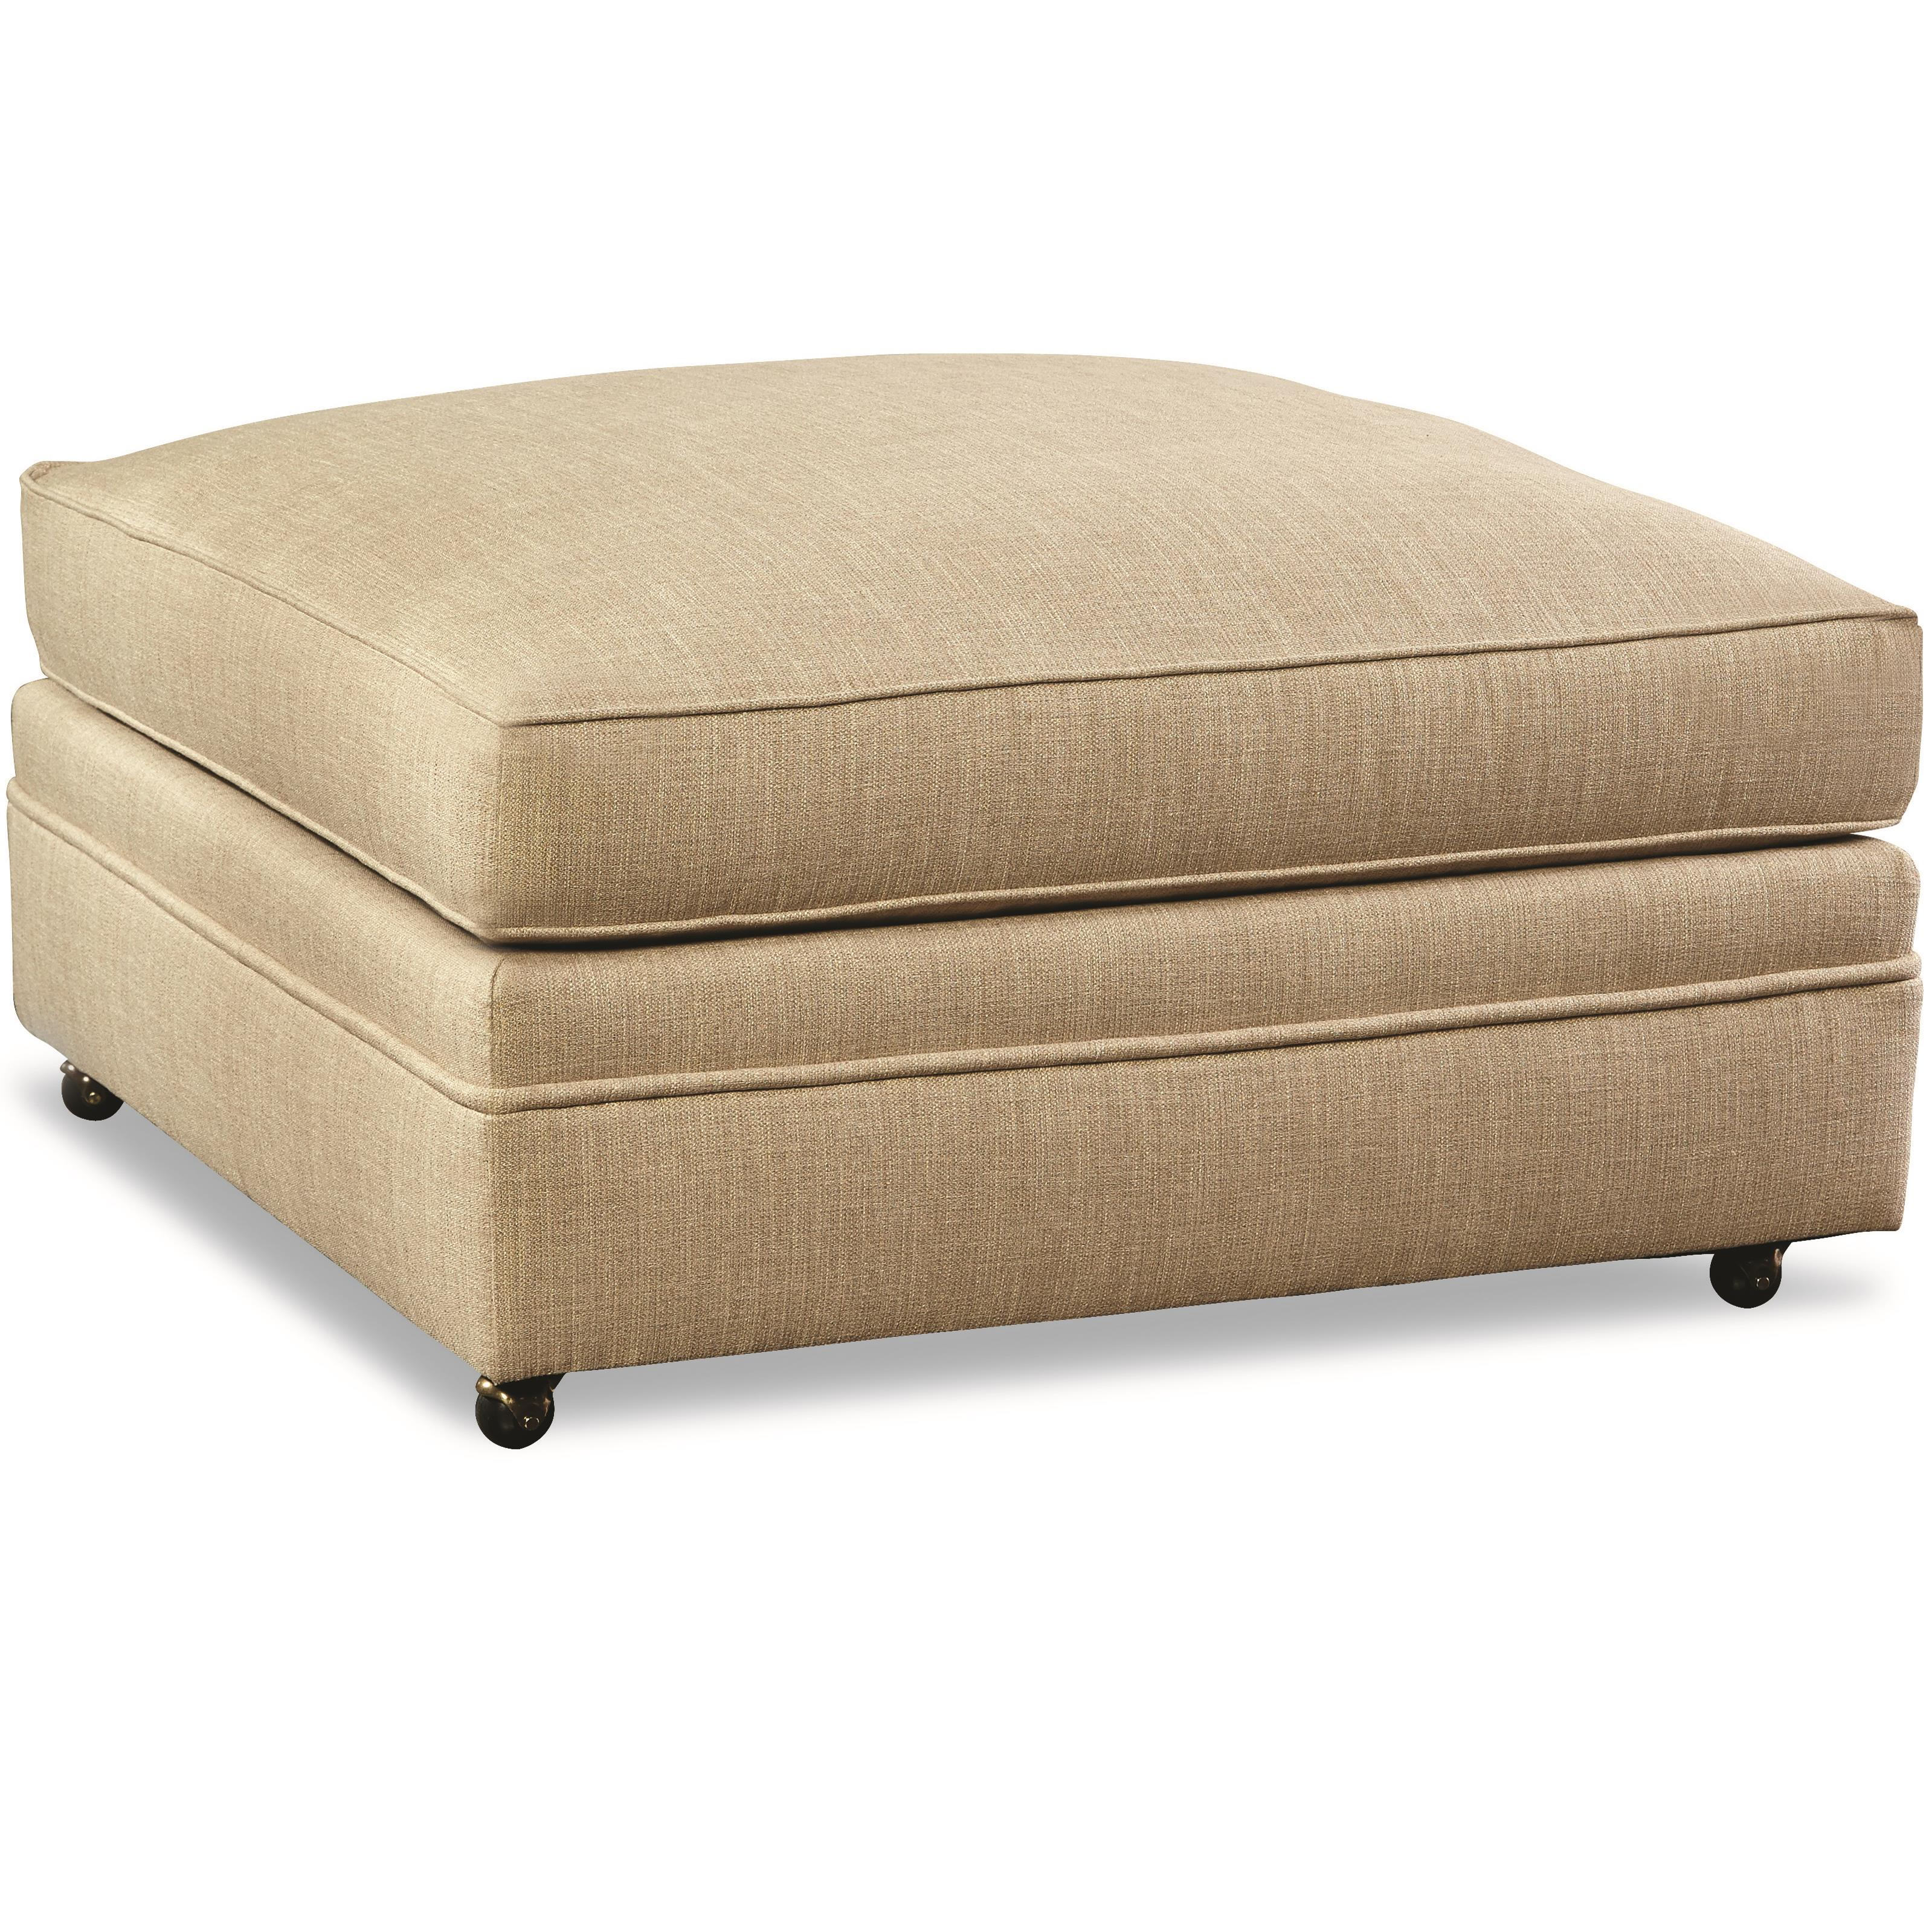 7100 Godfrey Ottoman by Huntington House at Belfort Furniture